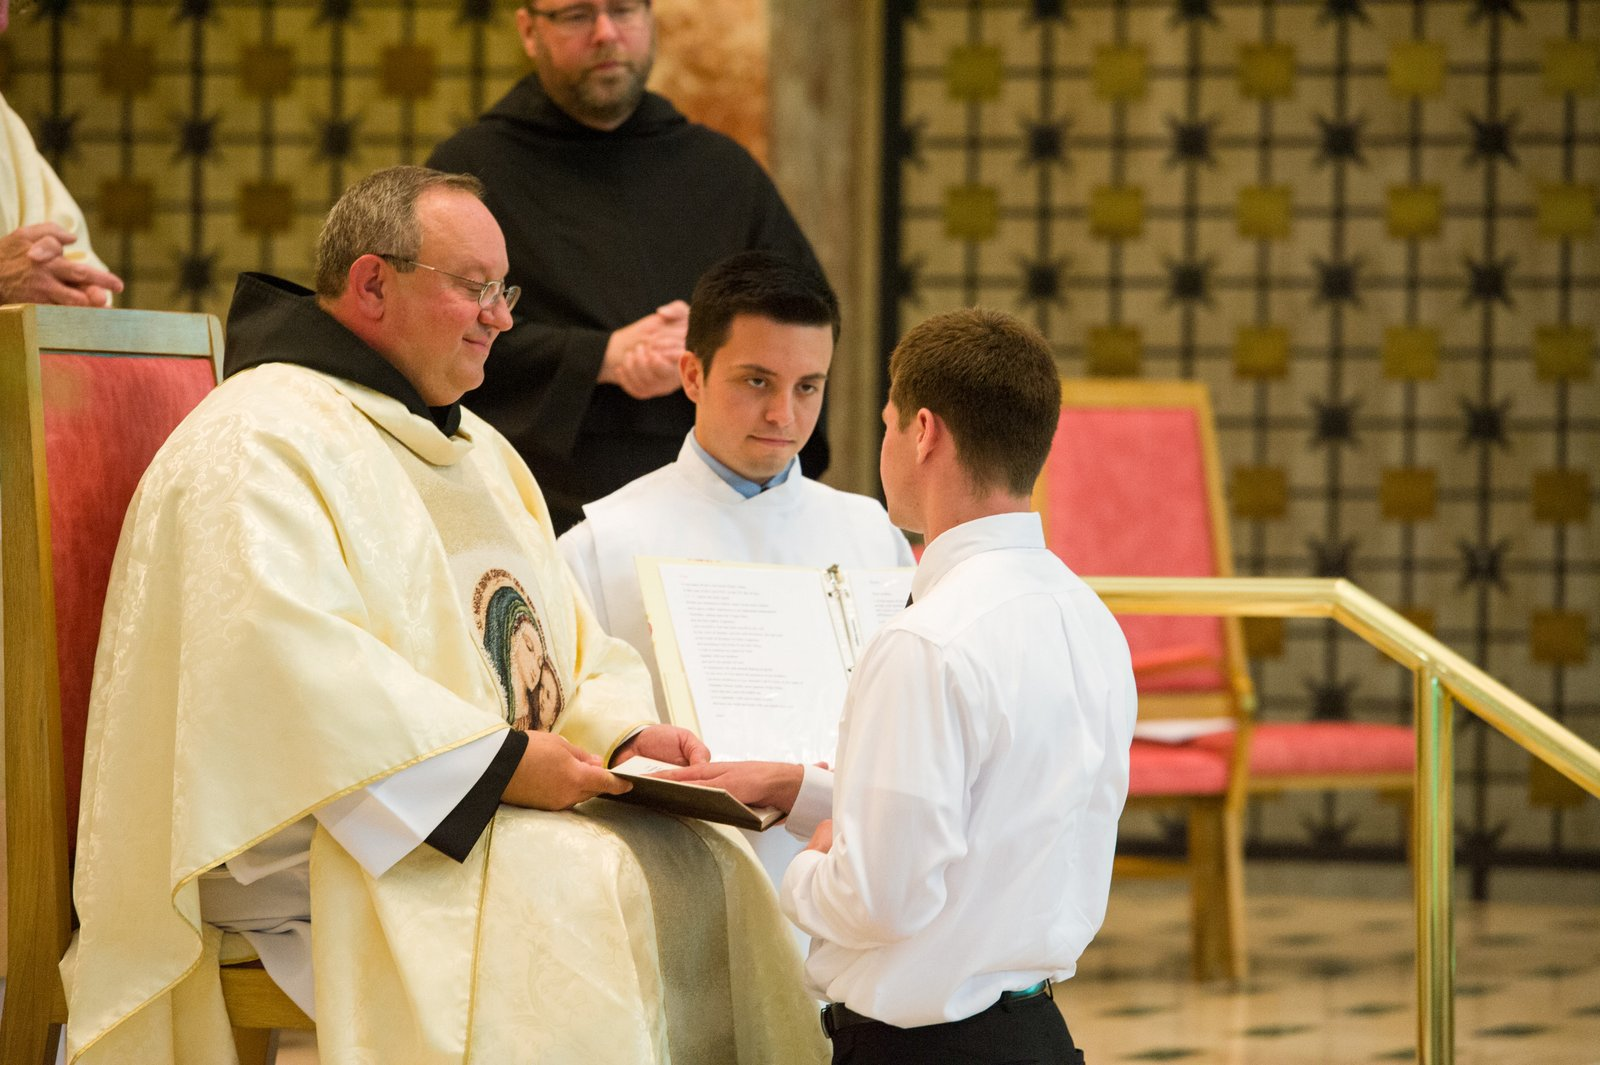 Sam Joutras professes his first vows